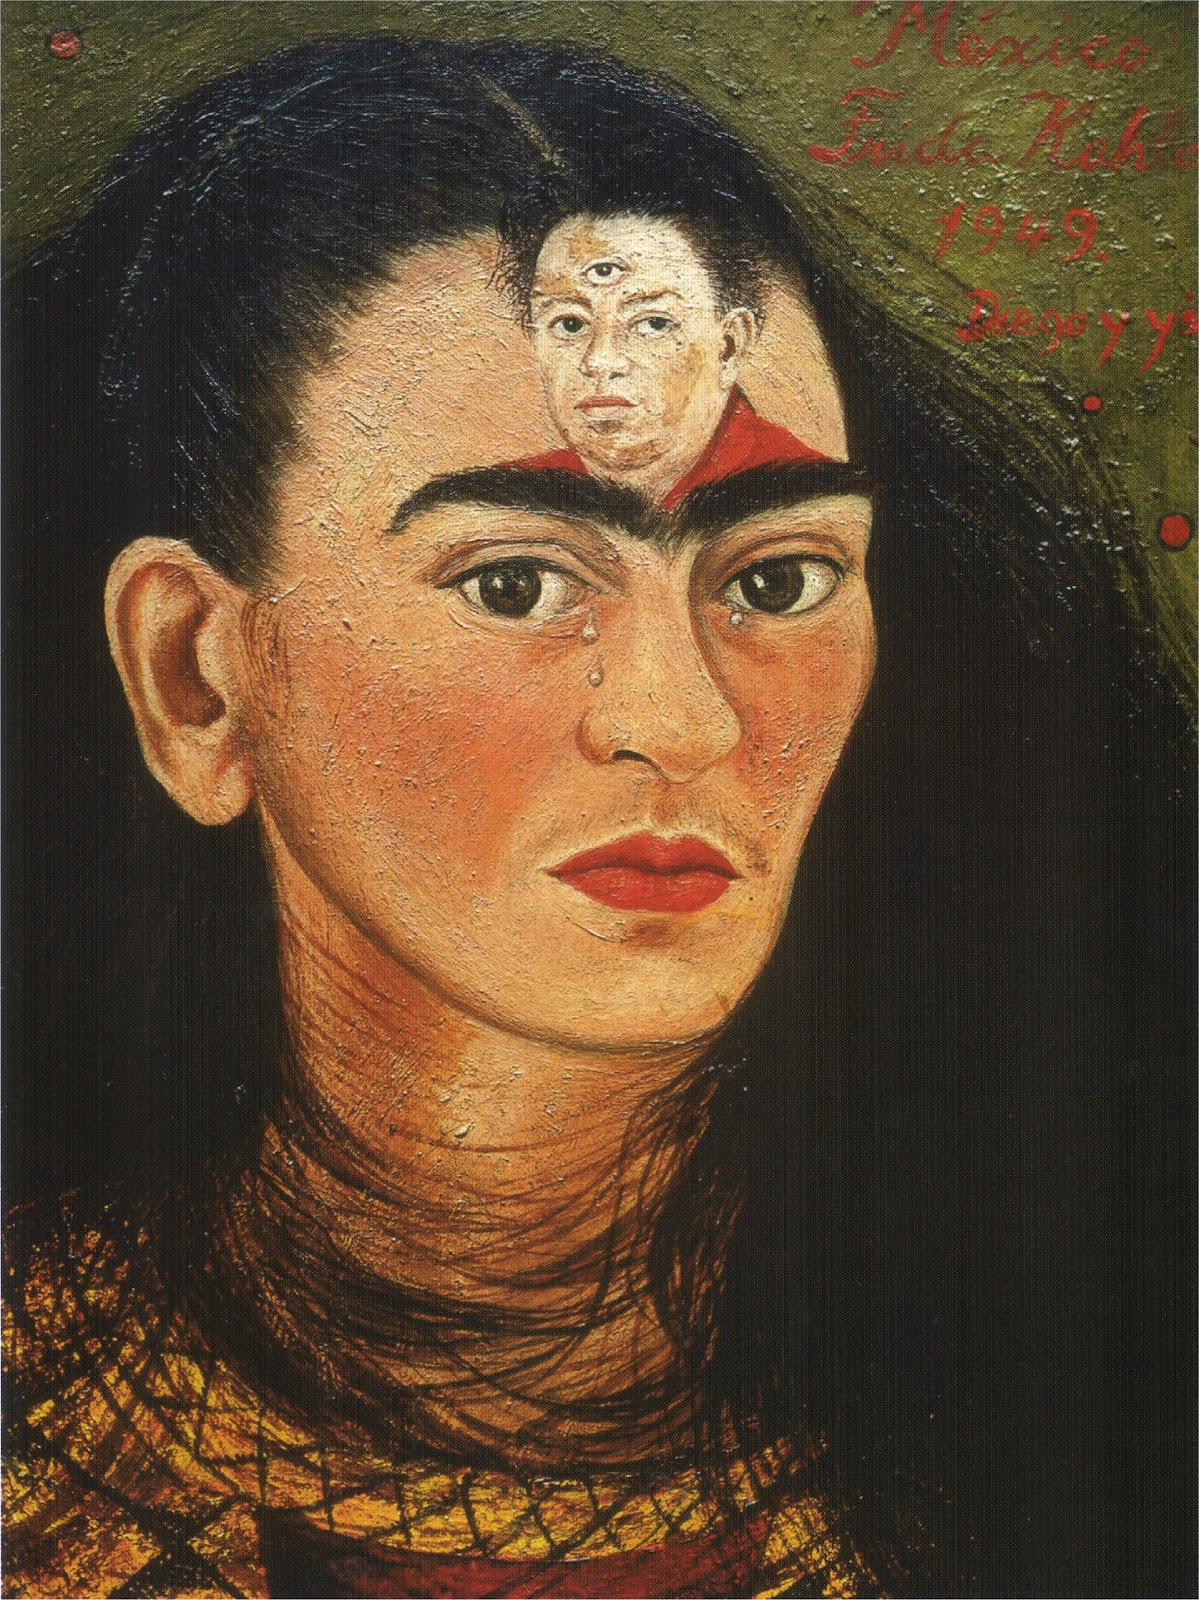 Frida Kahlo | You rain on me - I sky you, | Tu mi piovi - Io ti cielo, 1947